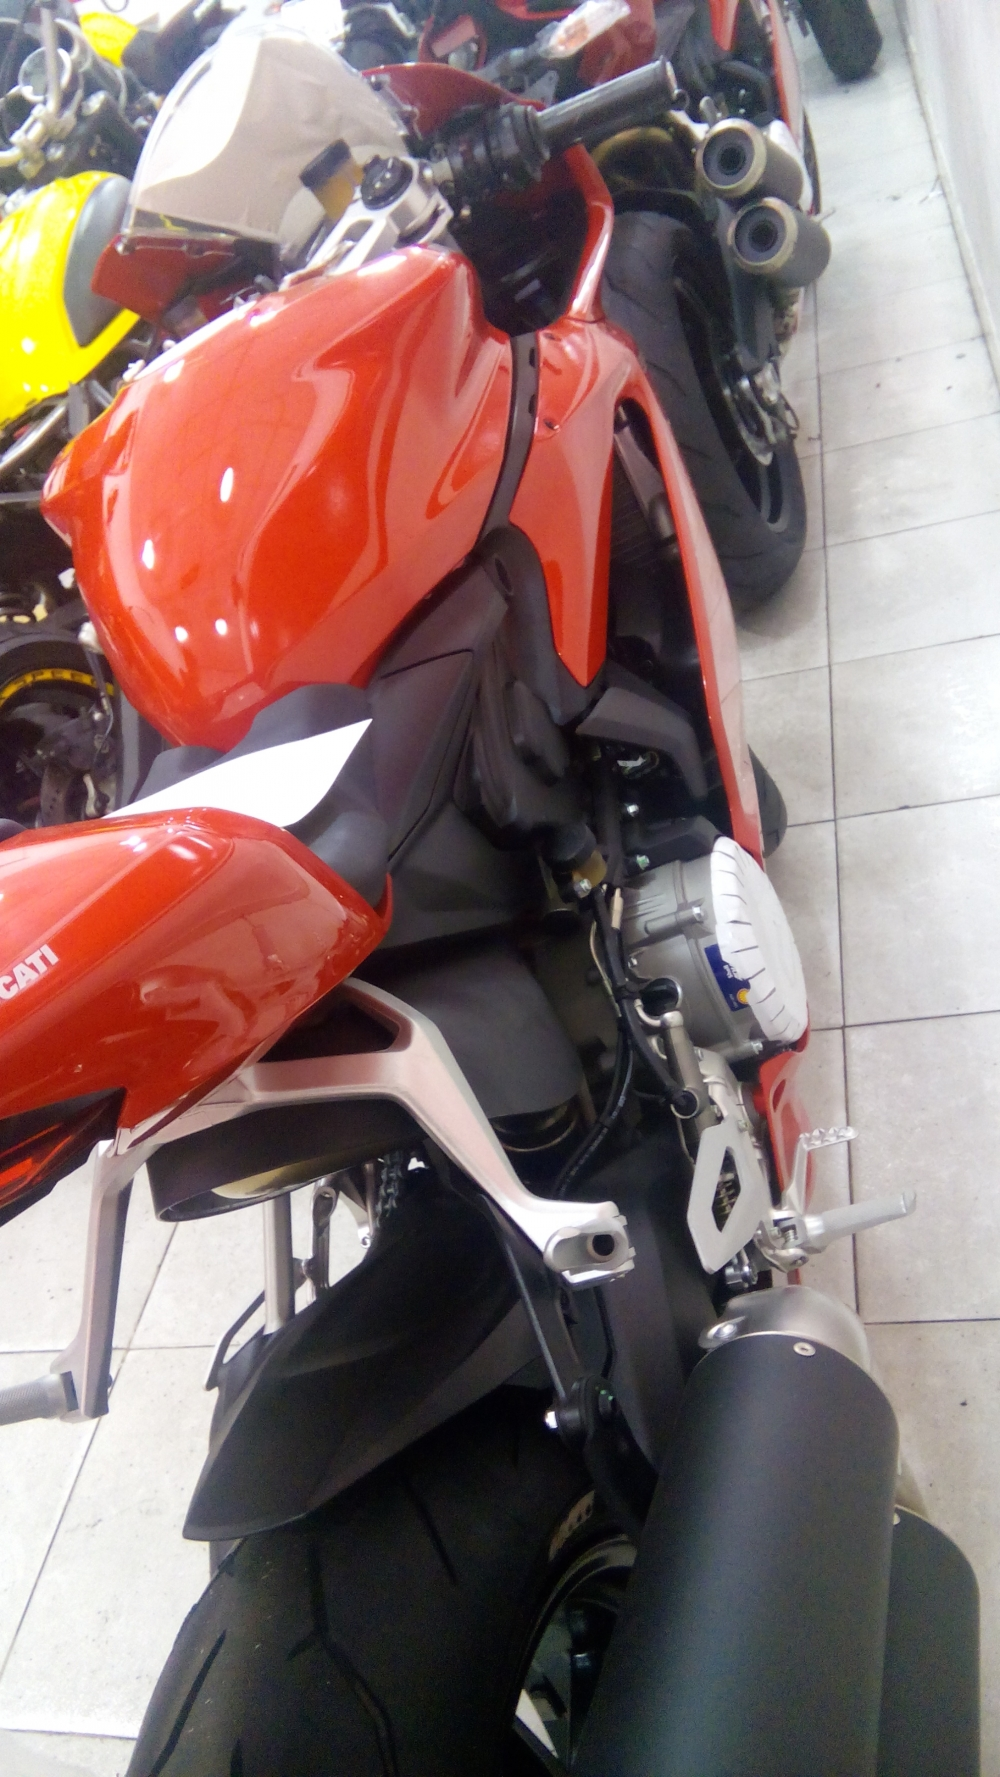 Panigale 959 - 2